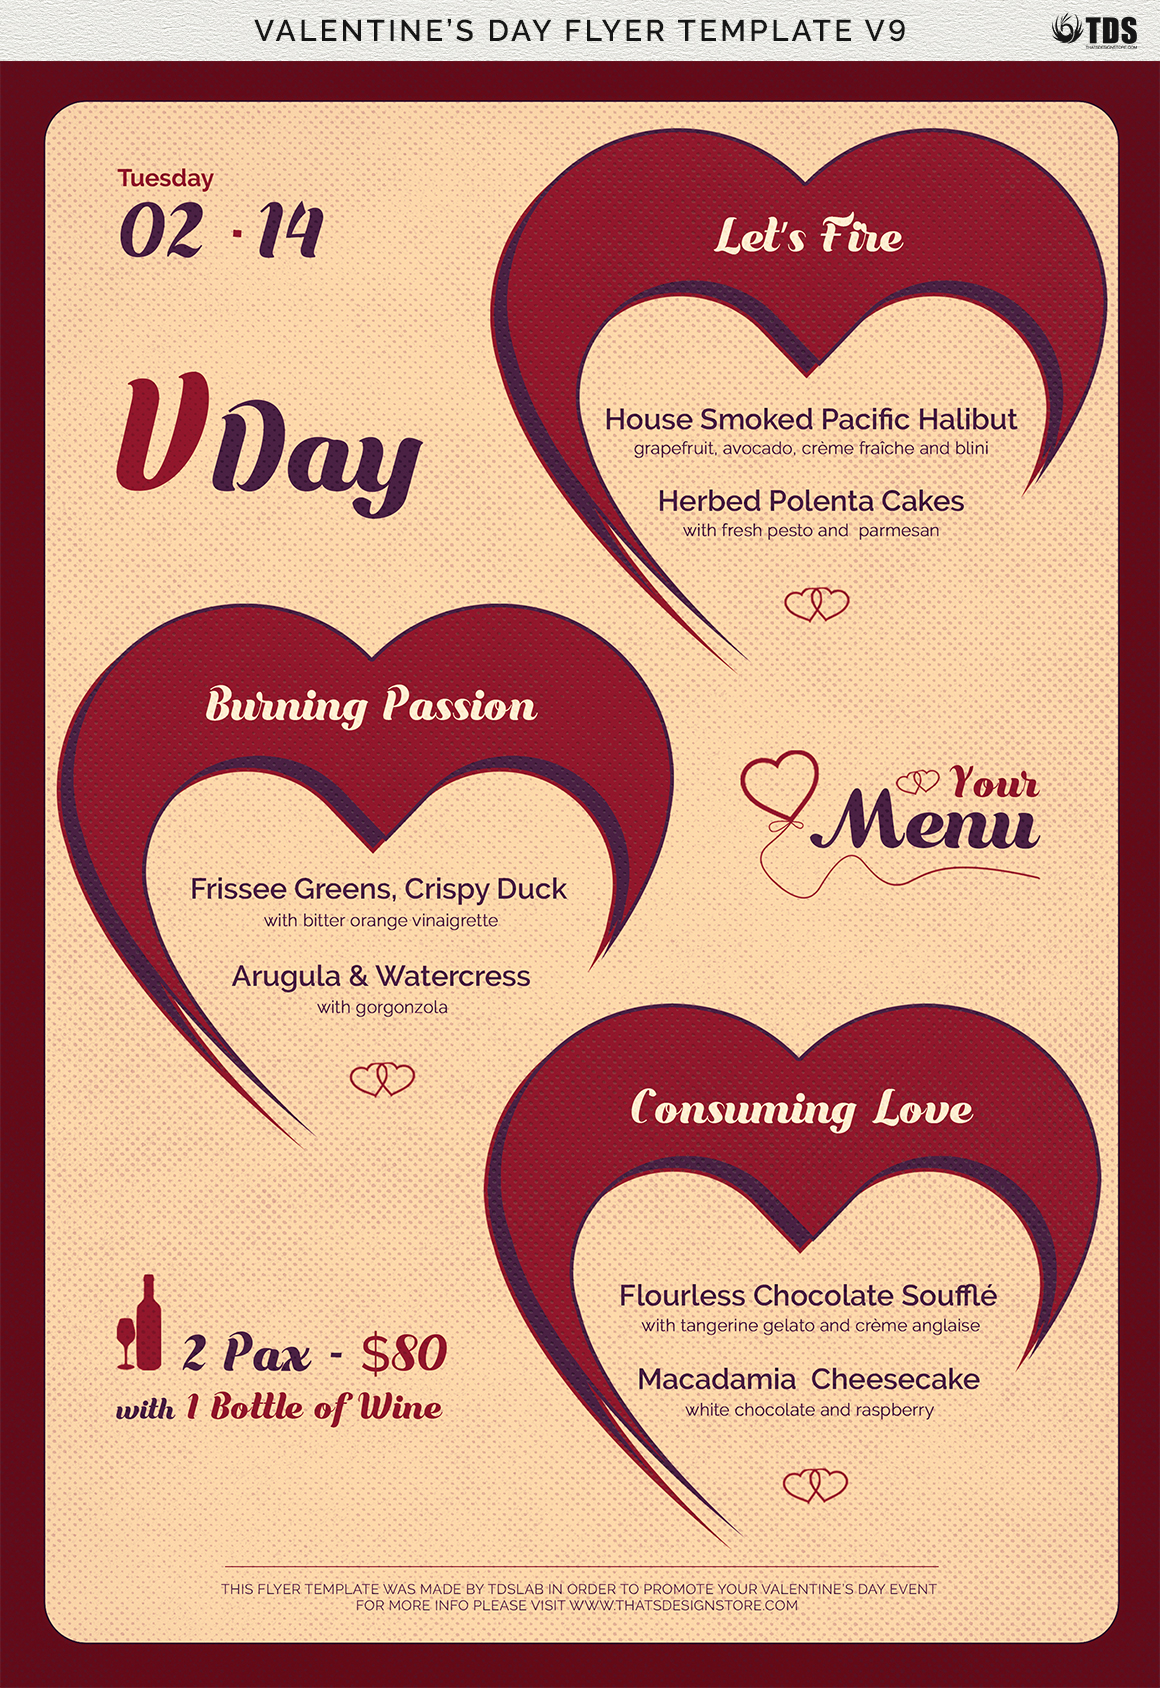 Valentines Day Menu Template V9 example image 9